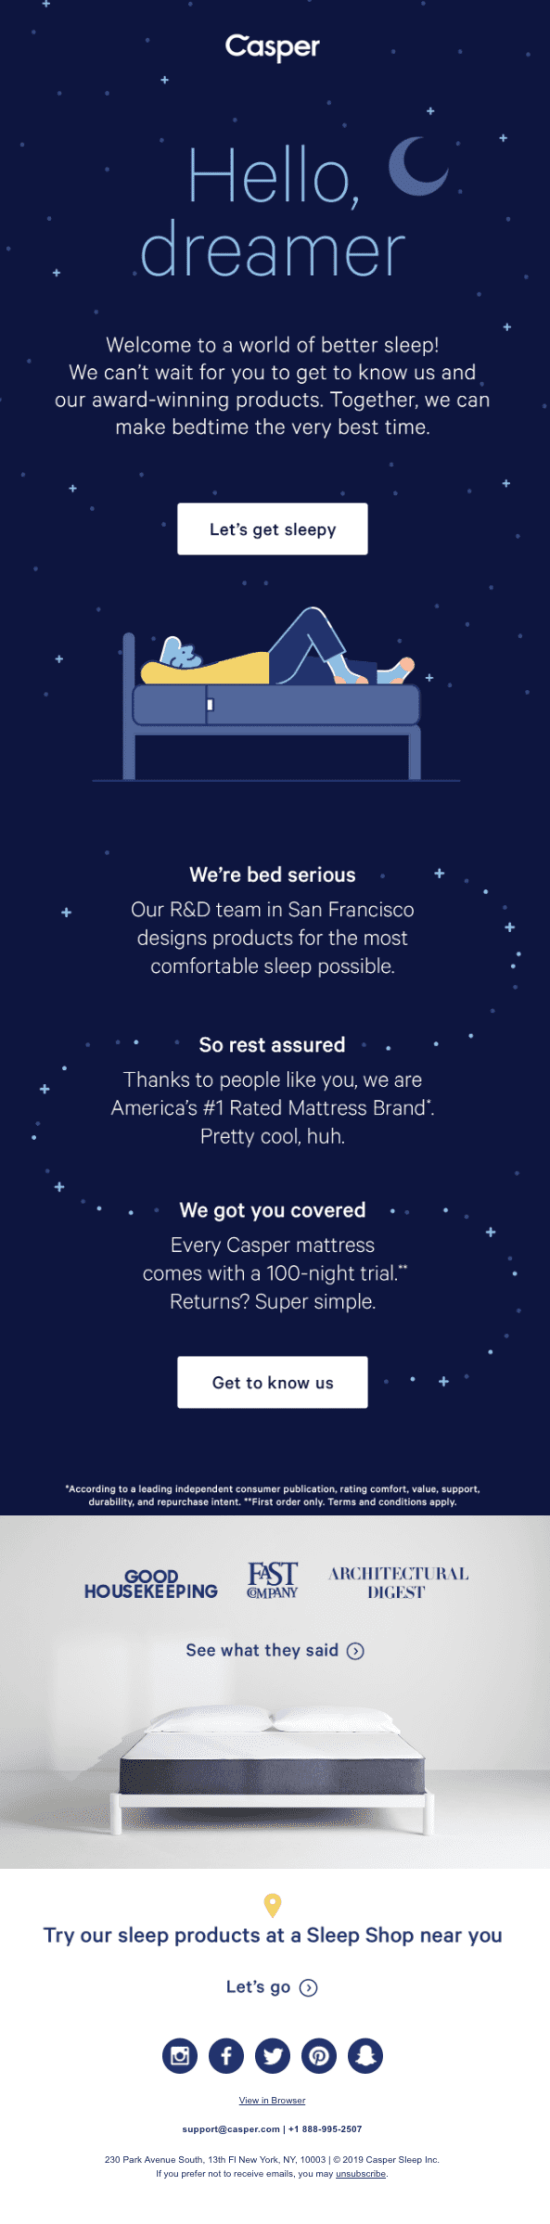 welcome email from casper